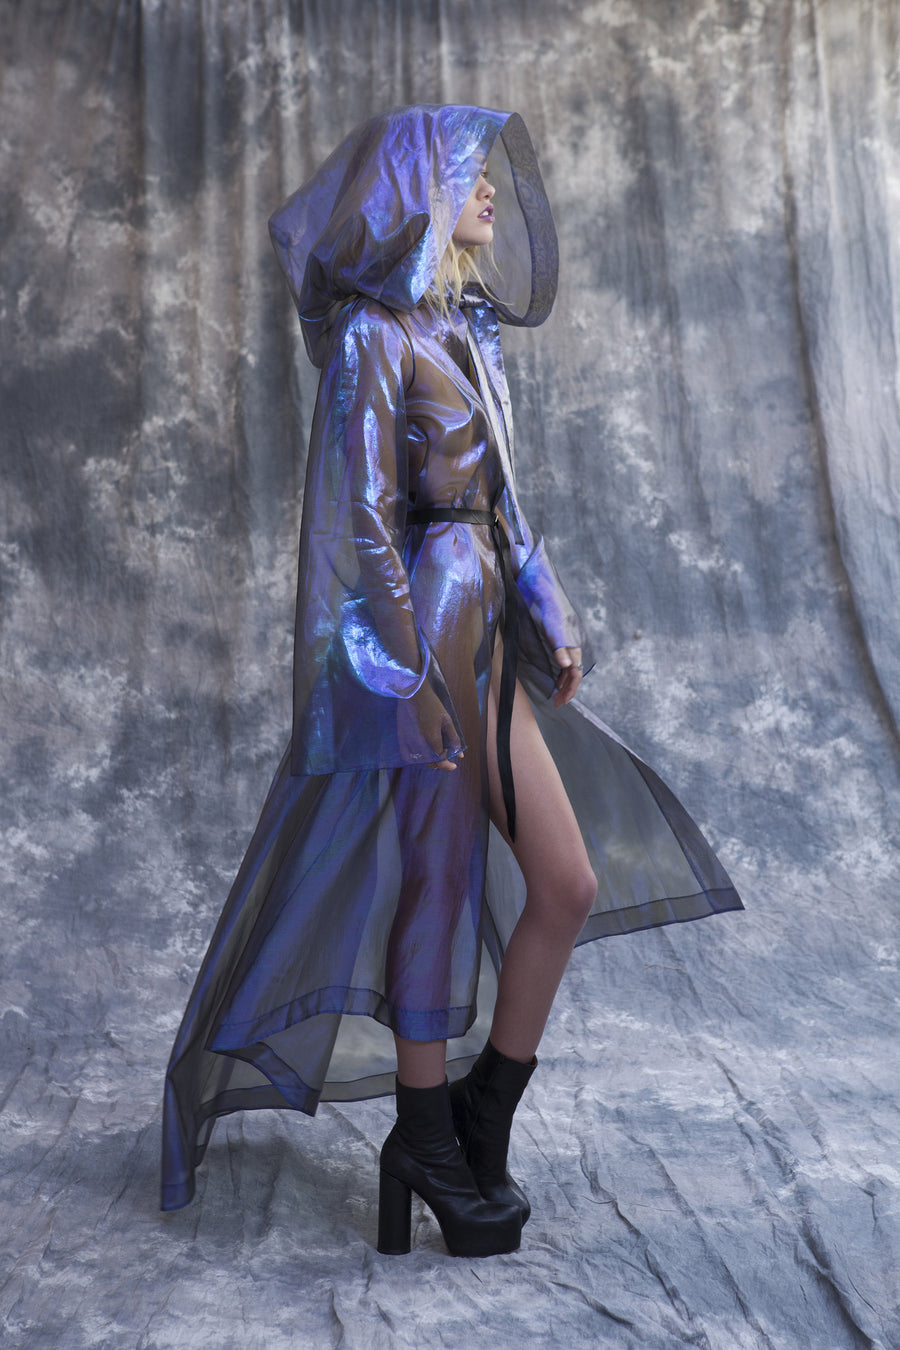 Maggie Laine IMG model Wendy Nichol New York Clothing Designer Handmade in NYC New York City SS17 Fashion Runway Show Signals to the Mothership Made to Order Custom Tailoring Made to Measure Death Valley Hooded Psychedelic Coat Sheer Transparent Silk Holographic Purple Blue Silver Belle Sleeve Hood Cape Jacket Cloak Long Train Witch Wizard Alien UFO Total Drone